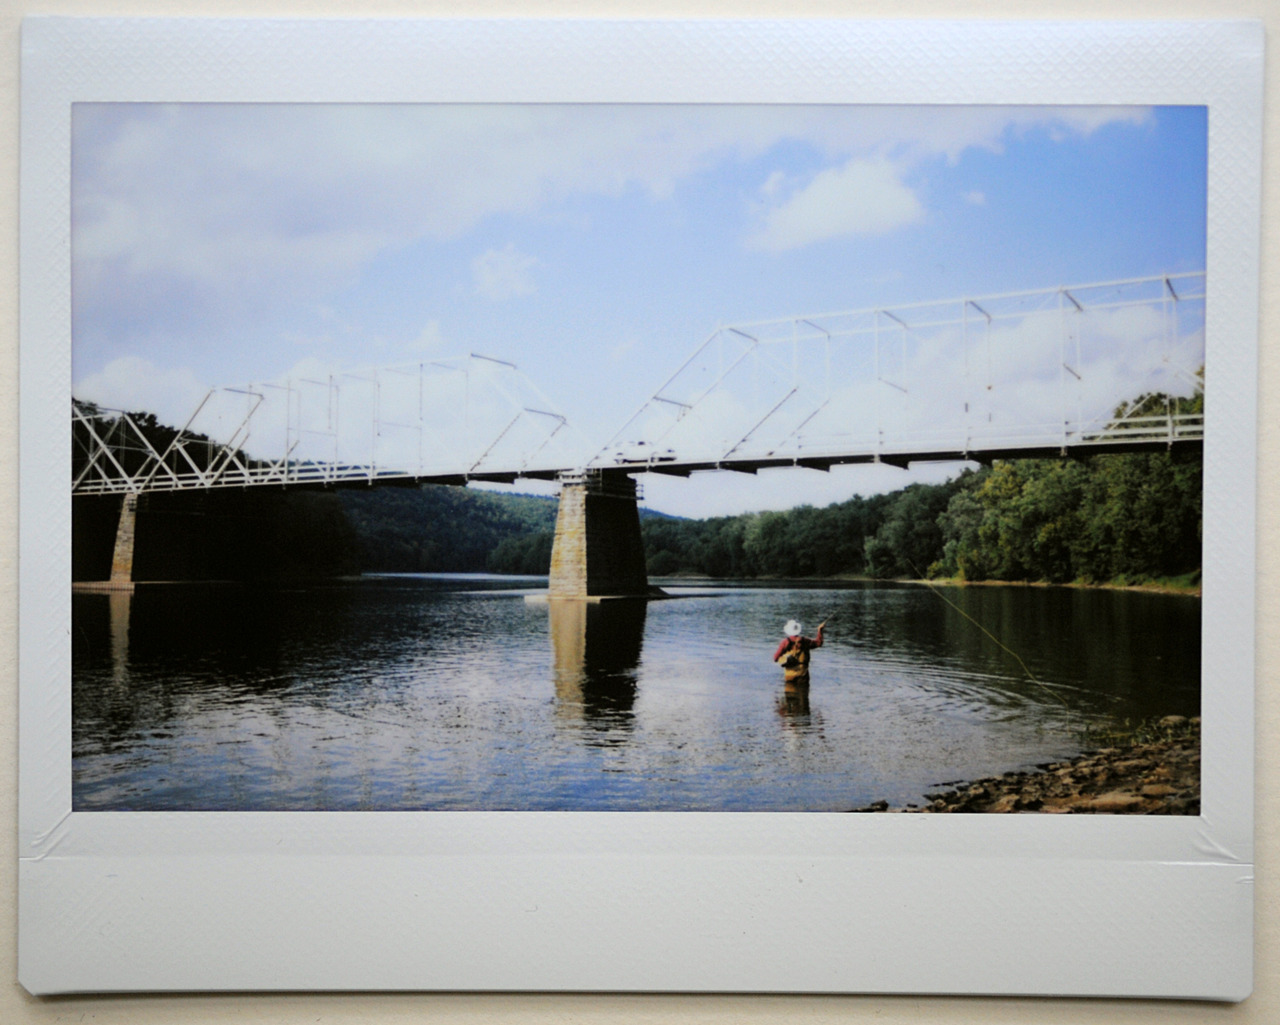 Photo of a photo. Fuji Instax camera, Delaware River, New Jersey side, unknown flyfisherman.